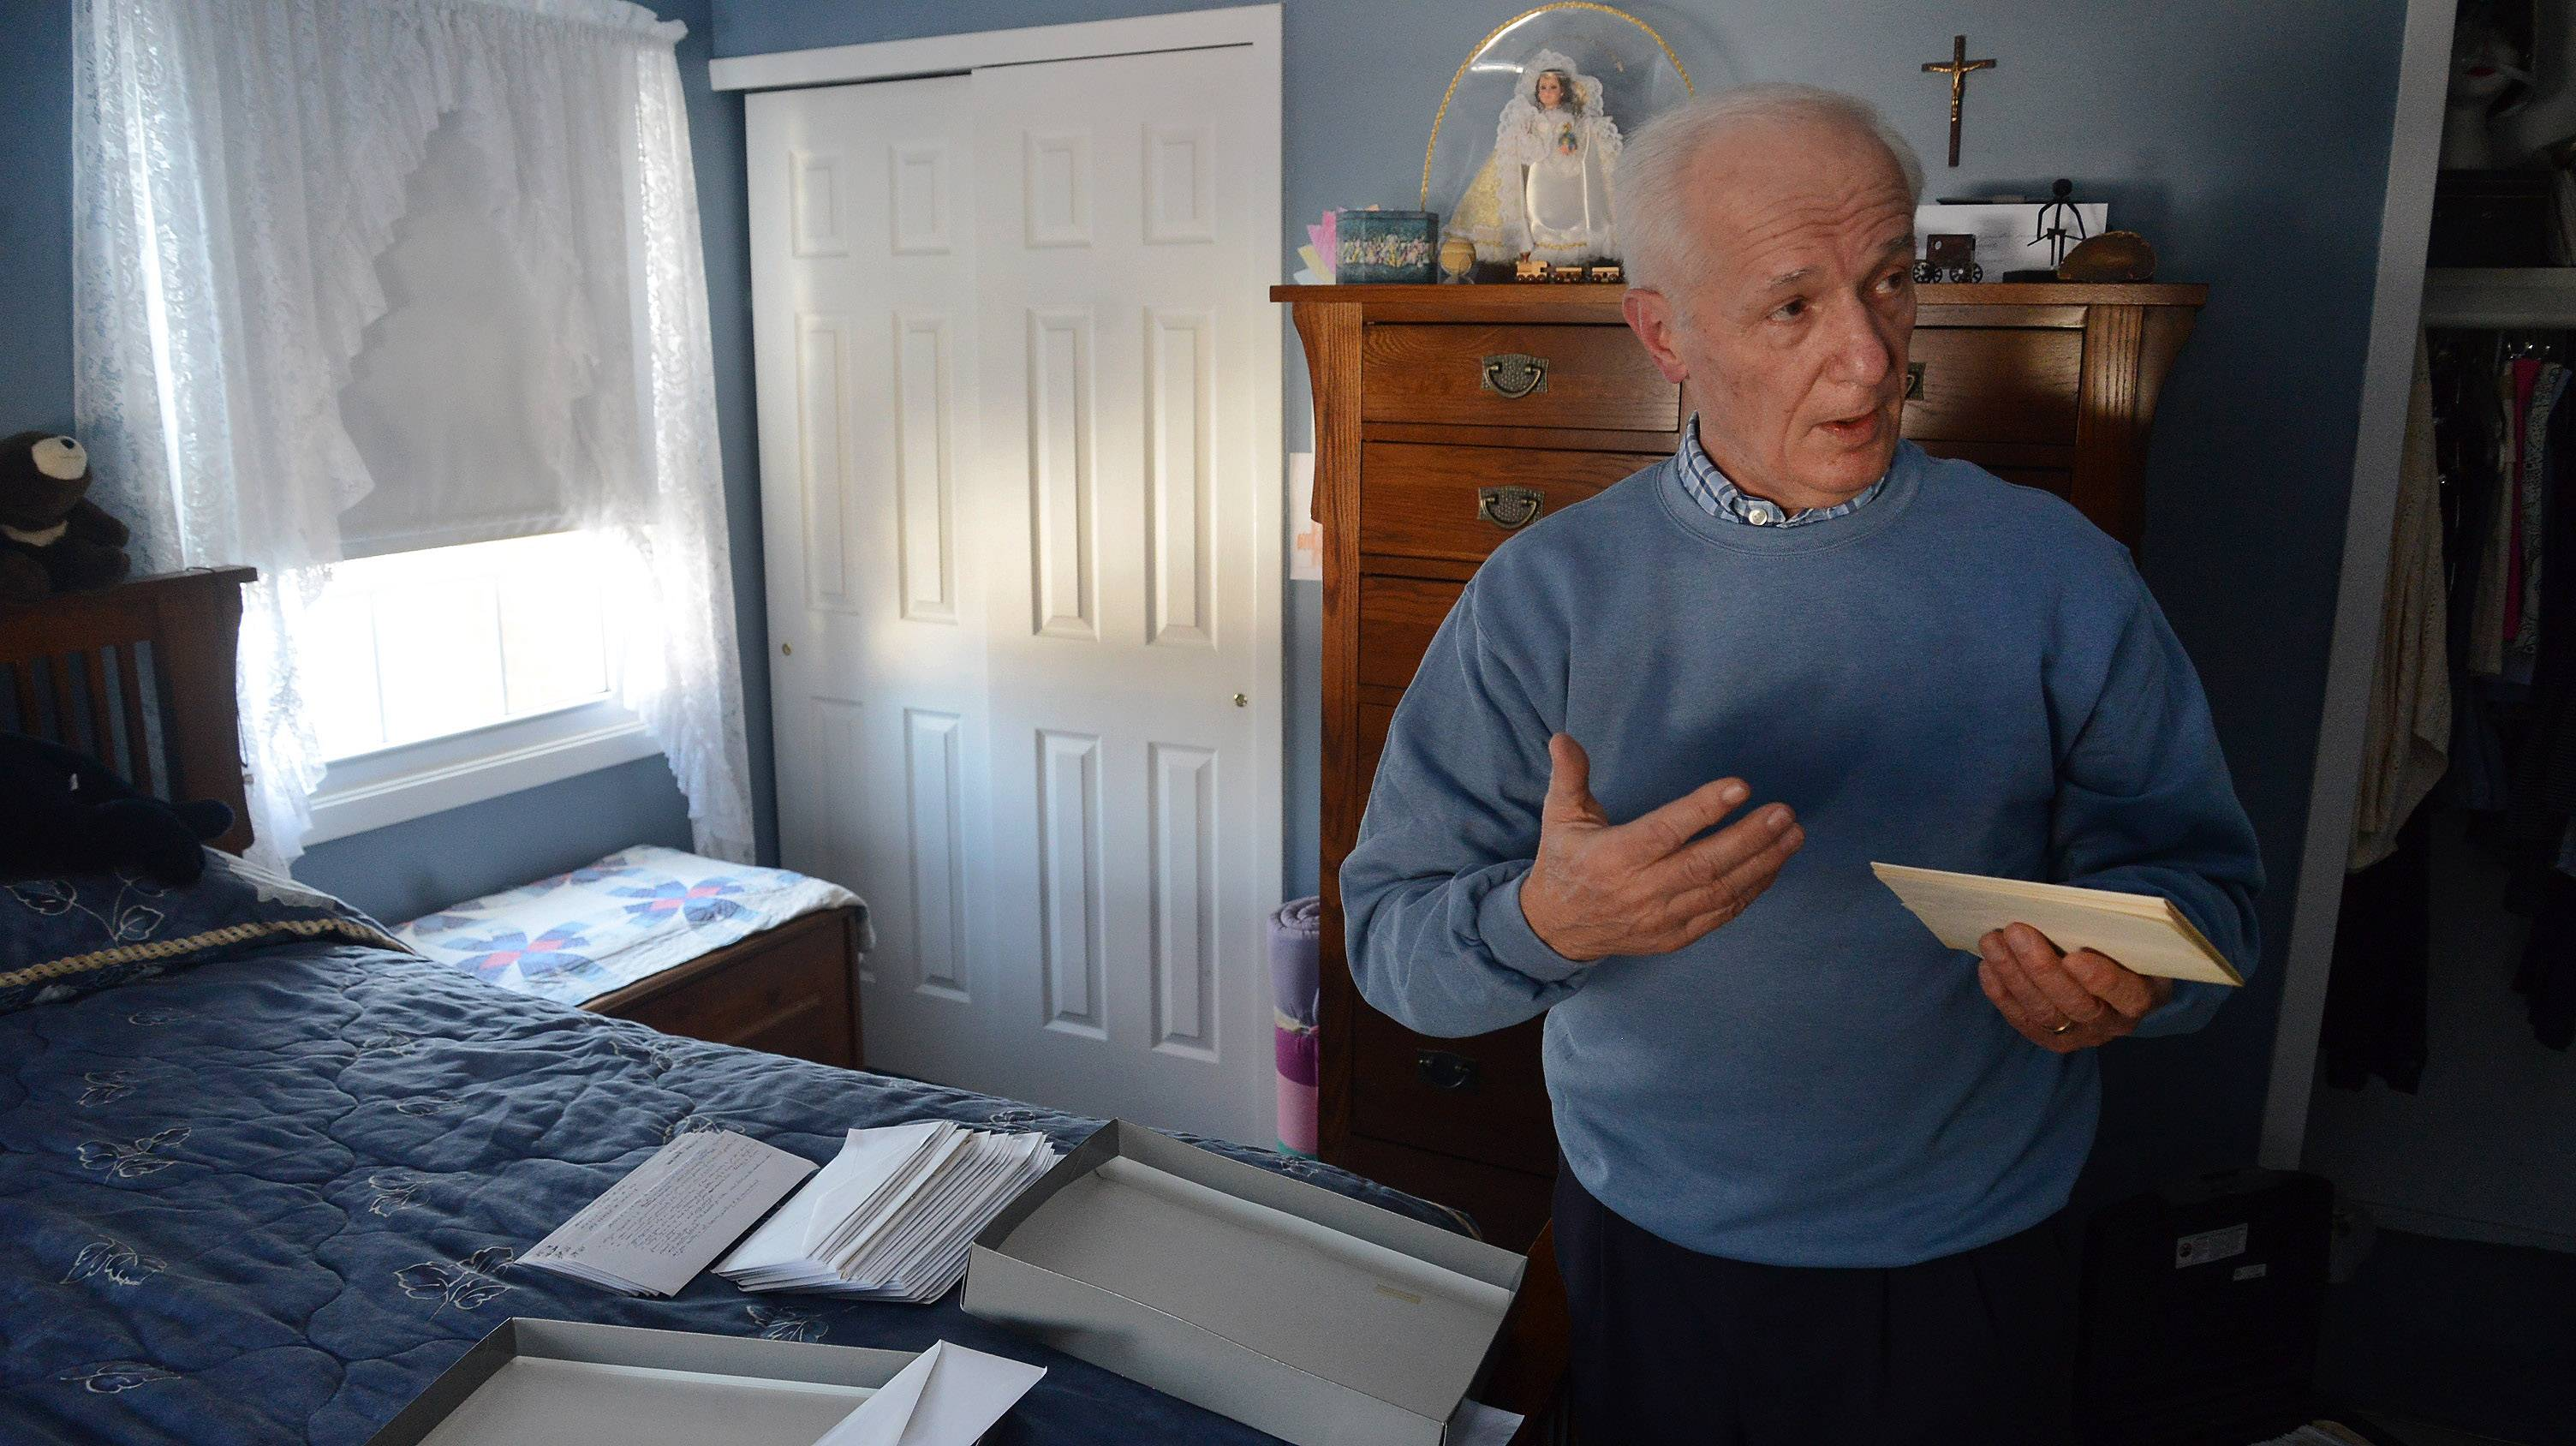 Dennis Depcik of Buffalo Grove explains how he found a box of old love letters from his late wife in a closet that show why they fell in love.